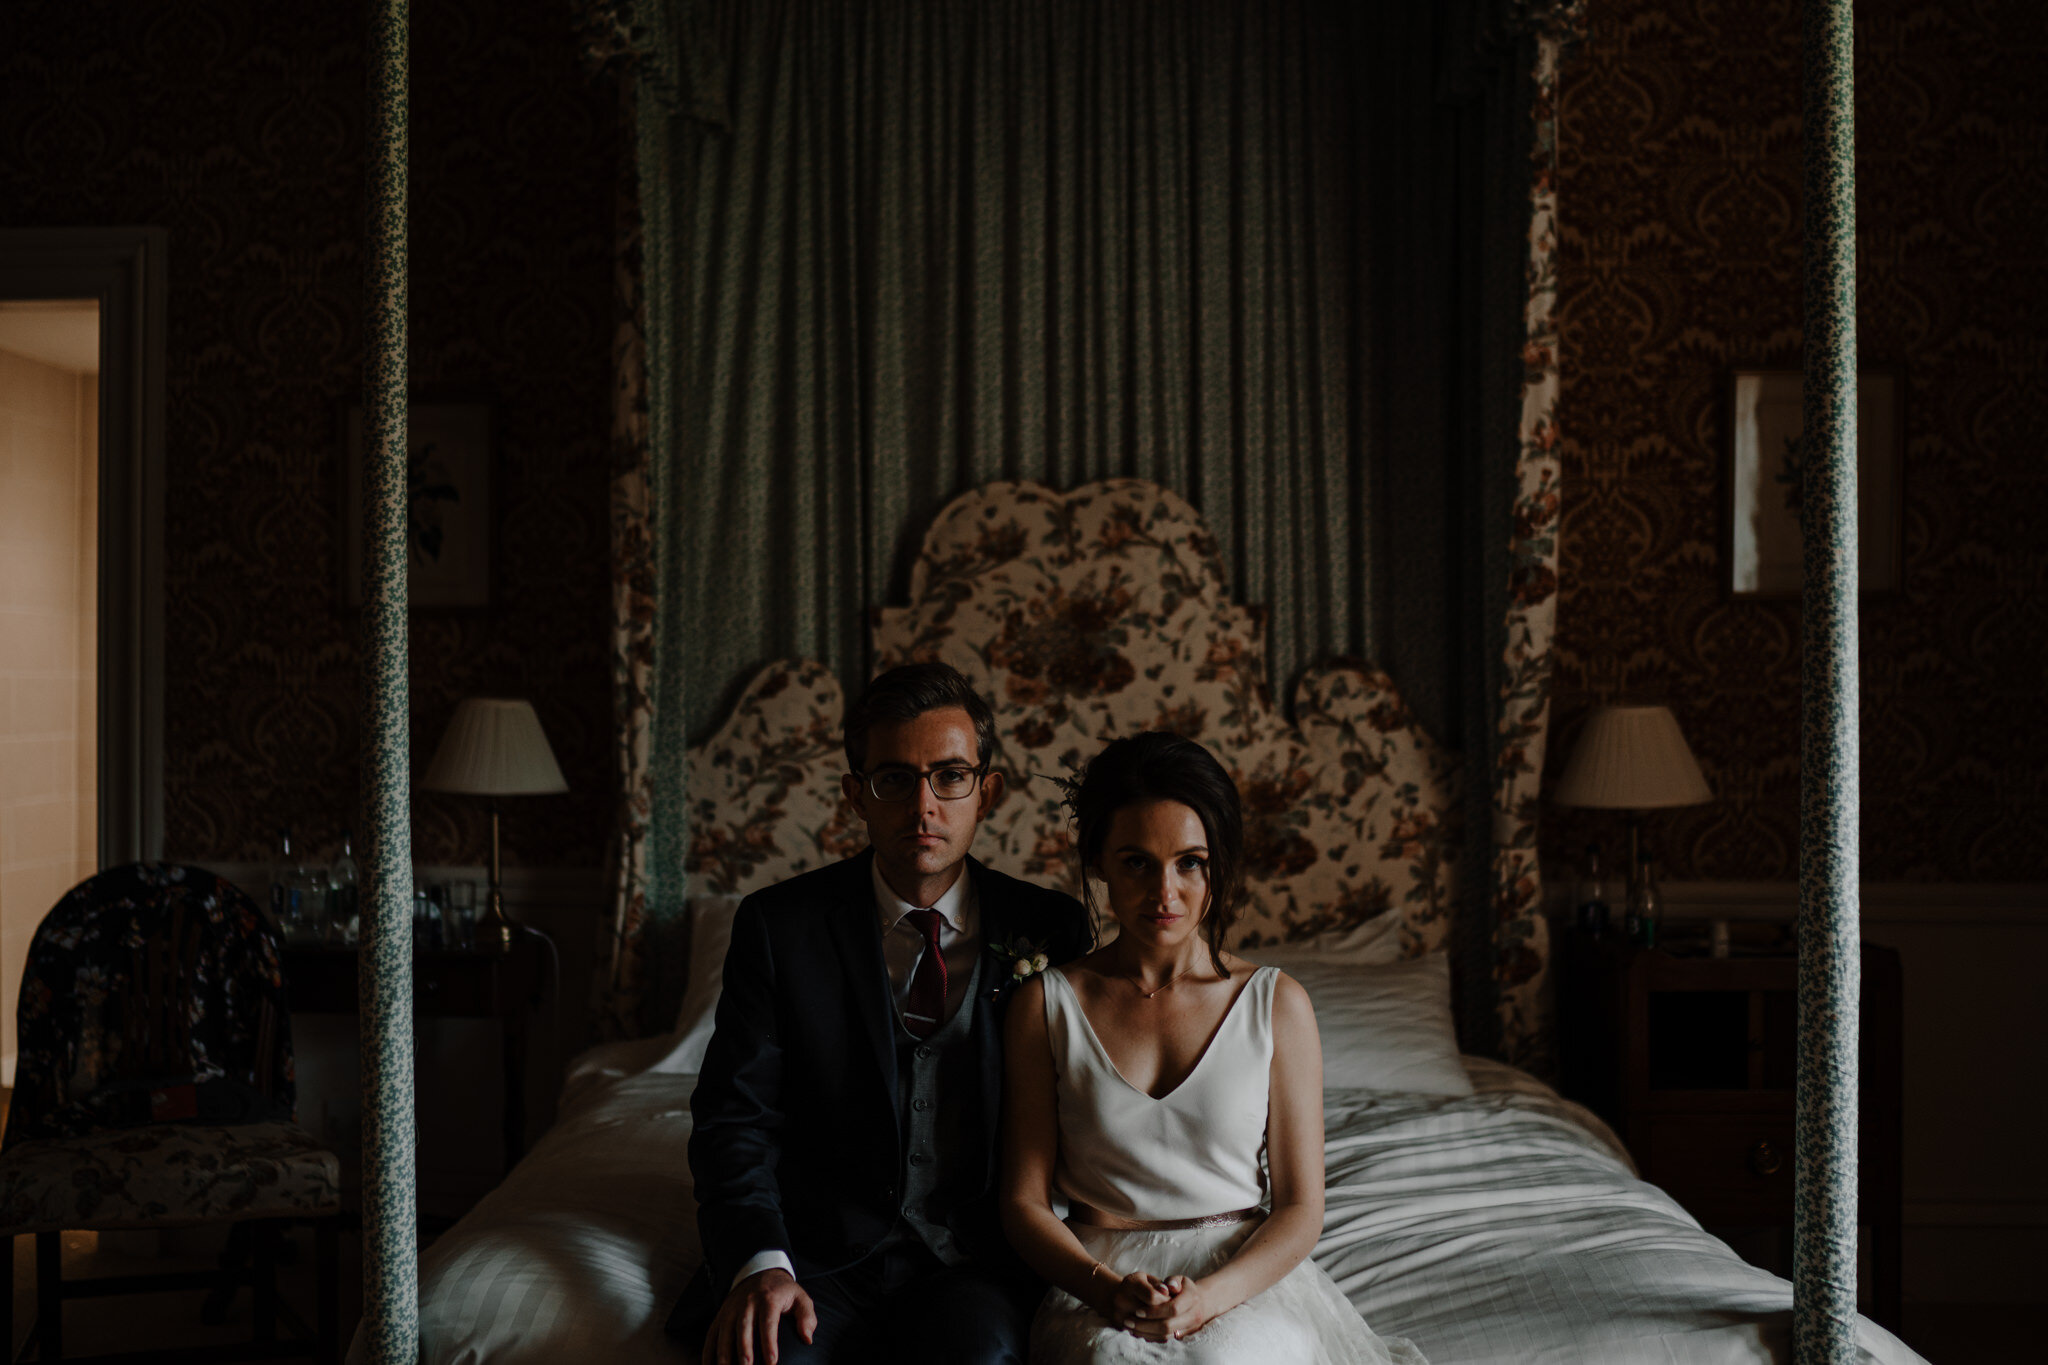 Lee & Lisa - The West Wing Crom Castle